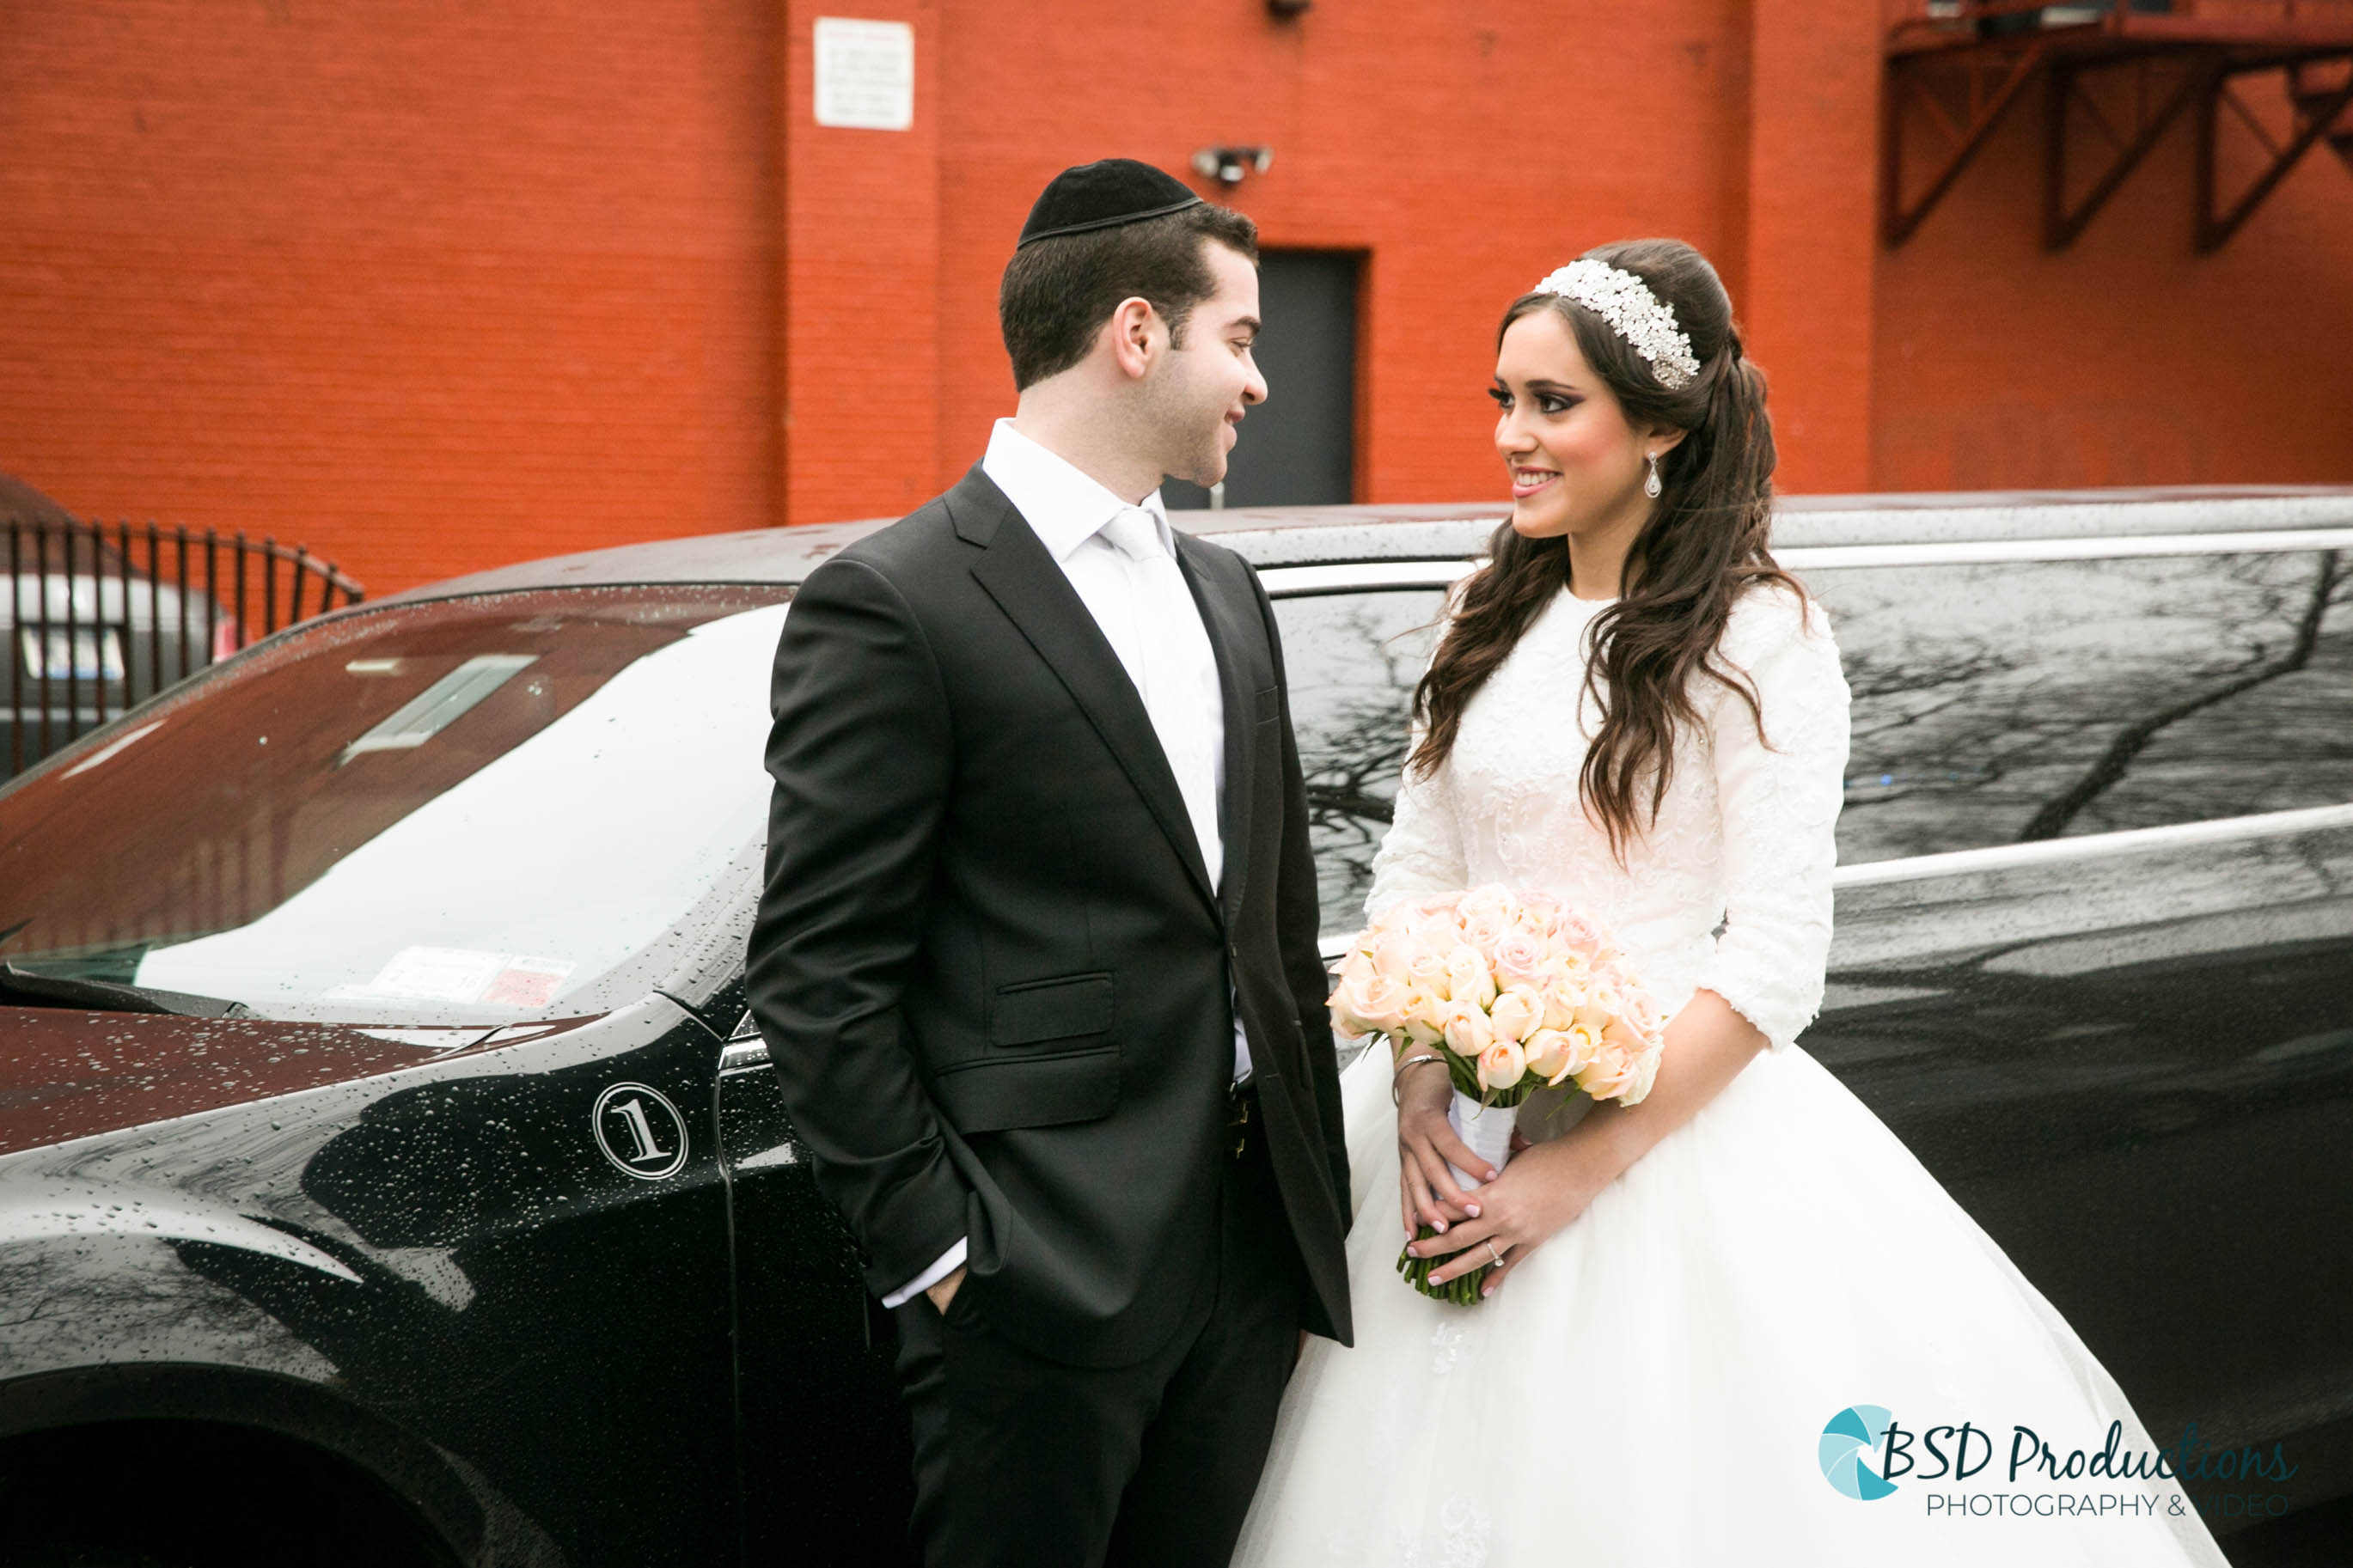 UH5A0414 Wedding – BSD Productions Photography